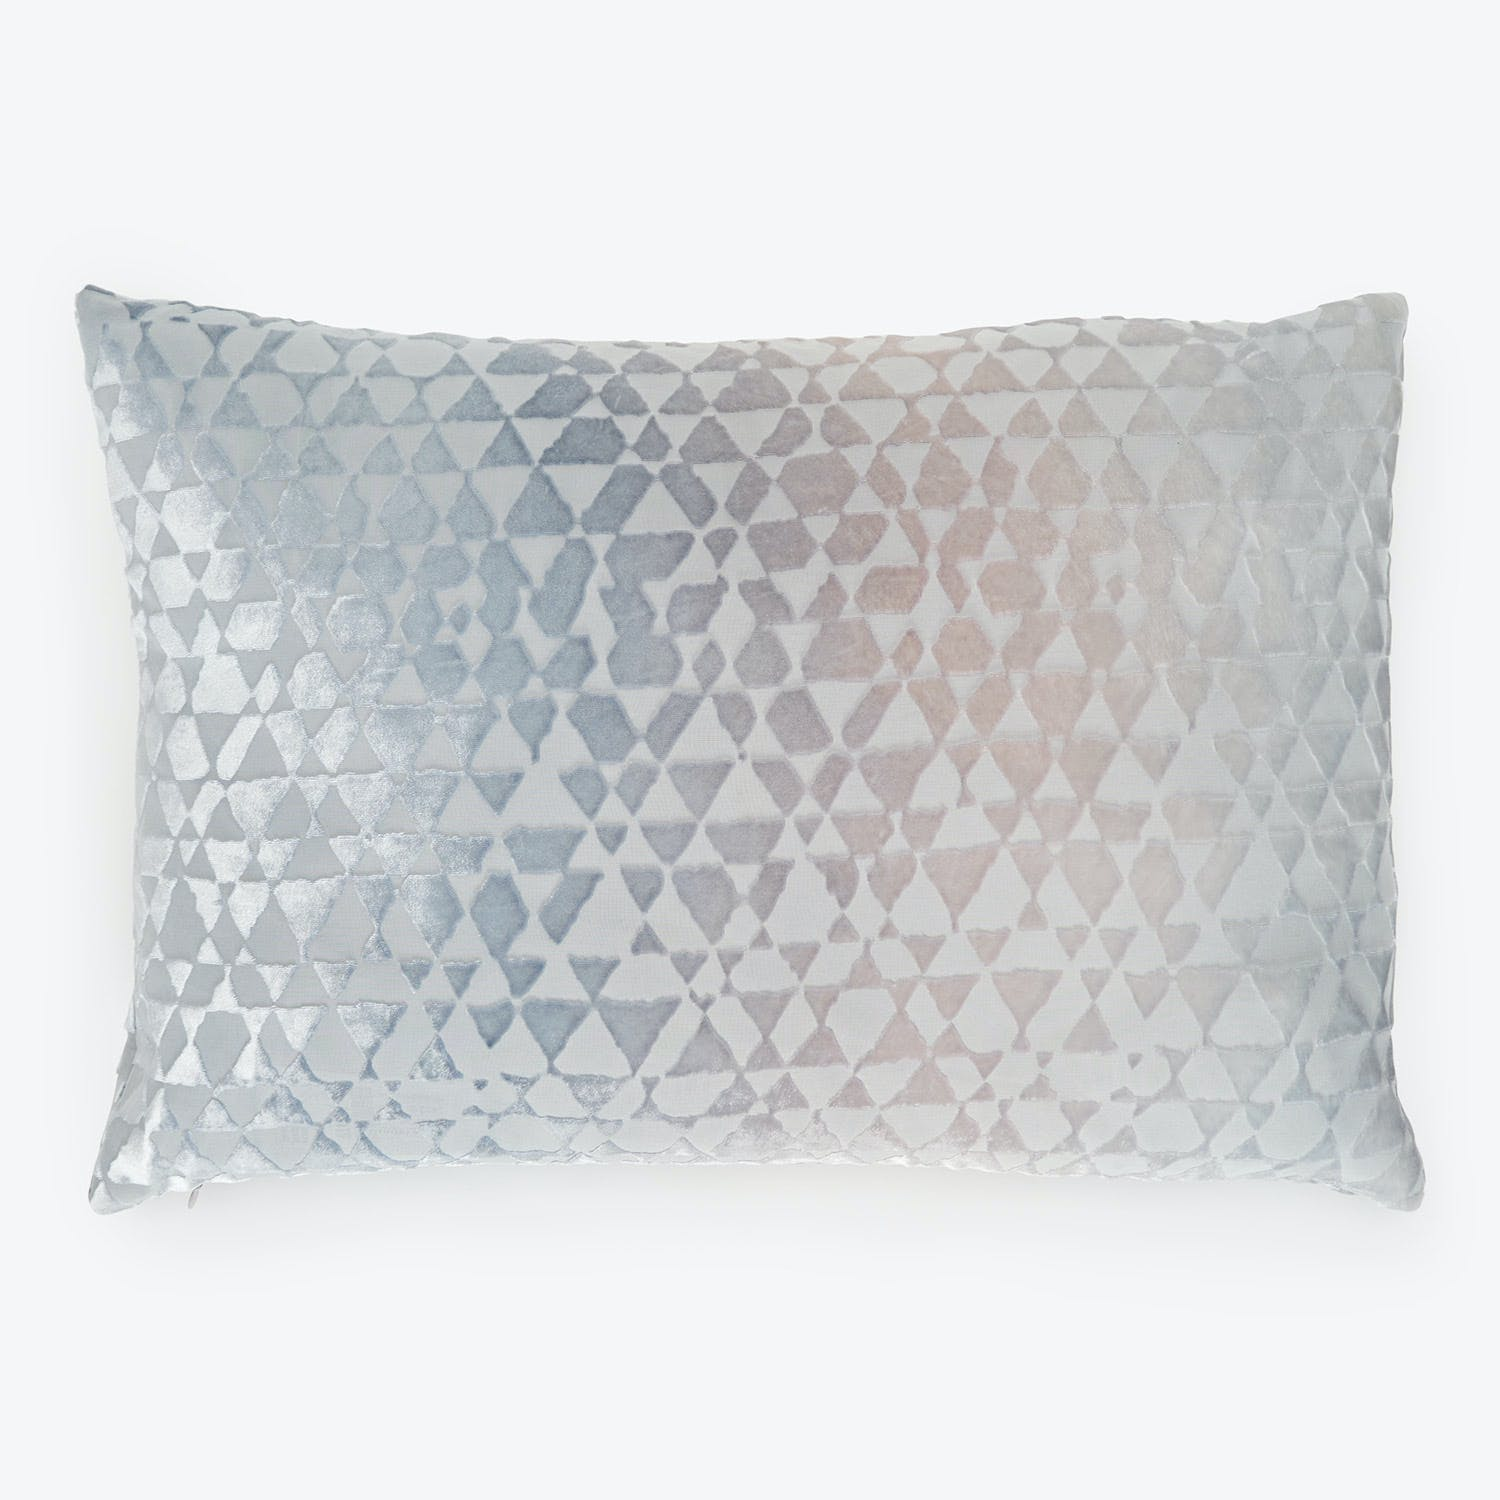 Product Image - Kevin O'Brien Triangles Velvet Pillow